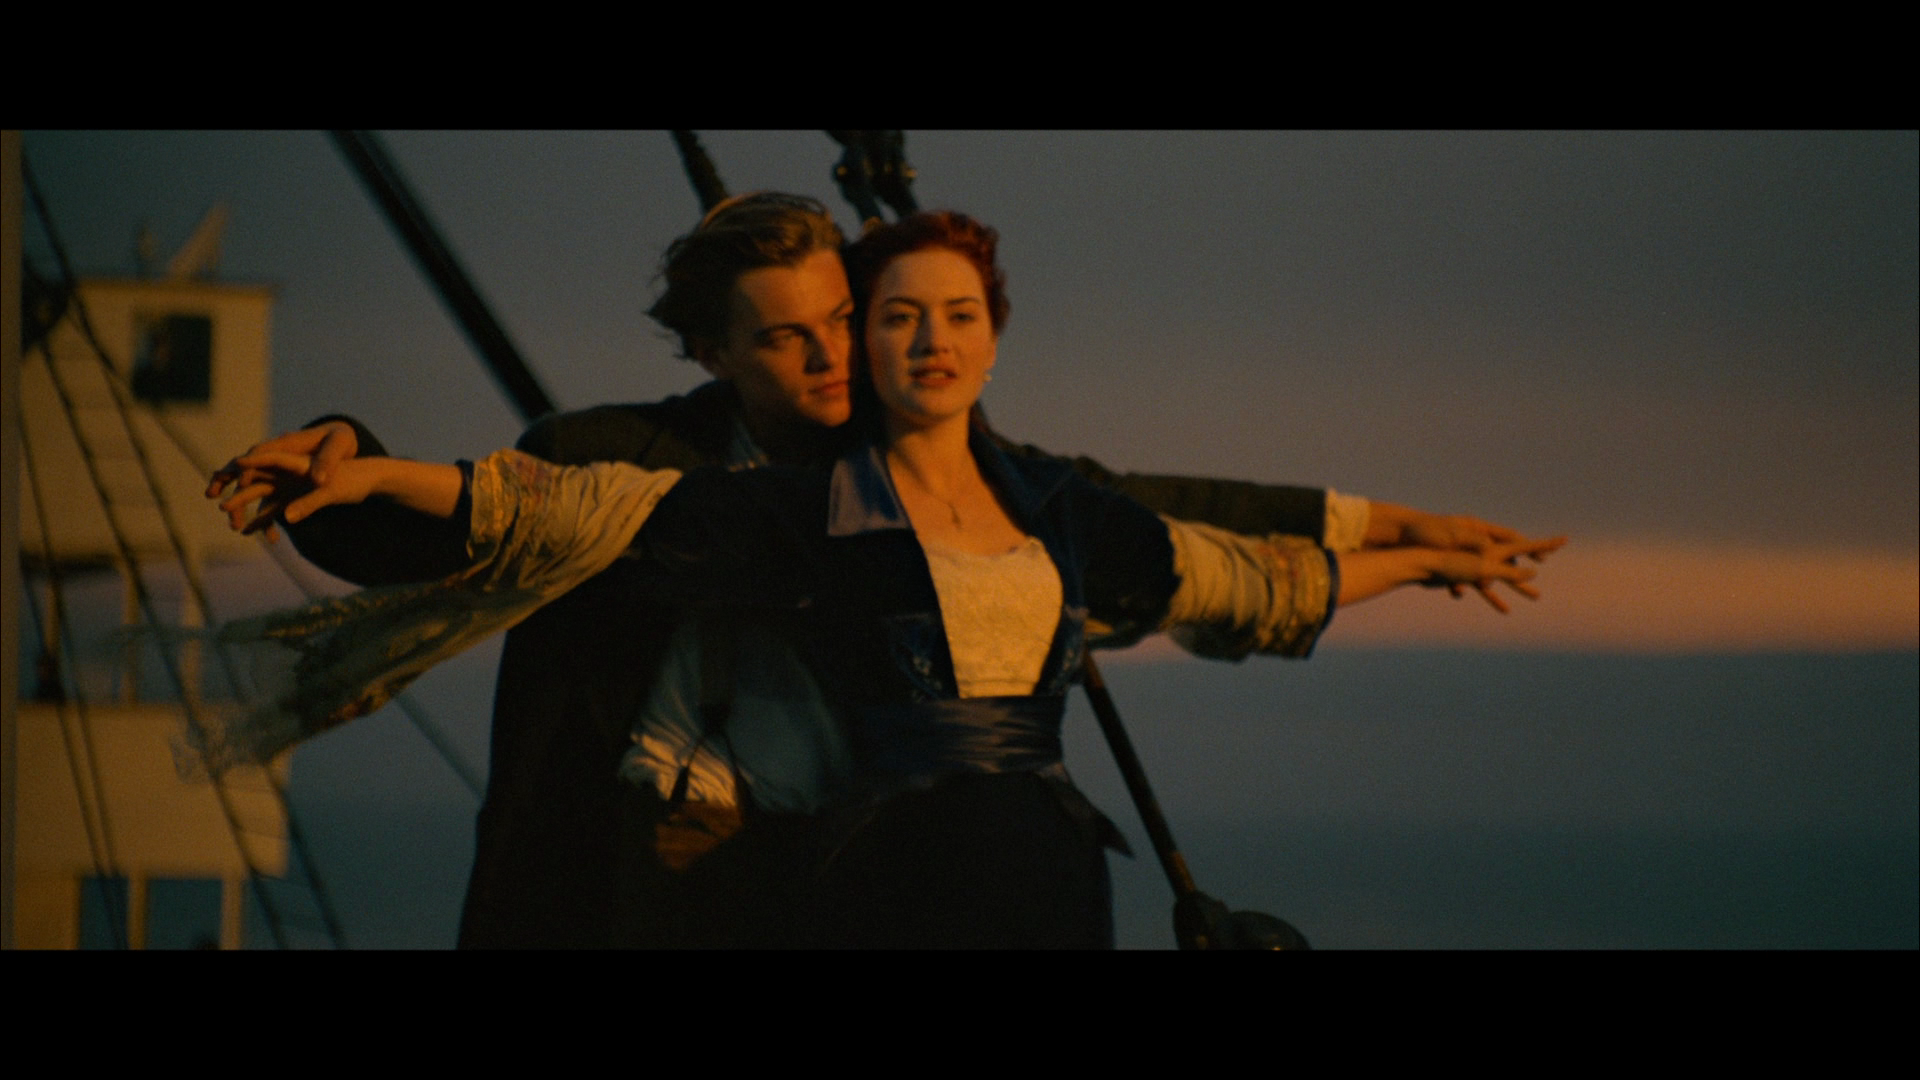 Titanic Love Wallpaper Hd : Titanic Movie wallpaper 1920x1080 #54715